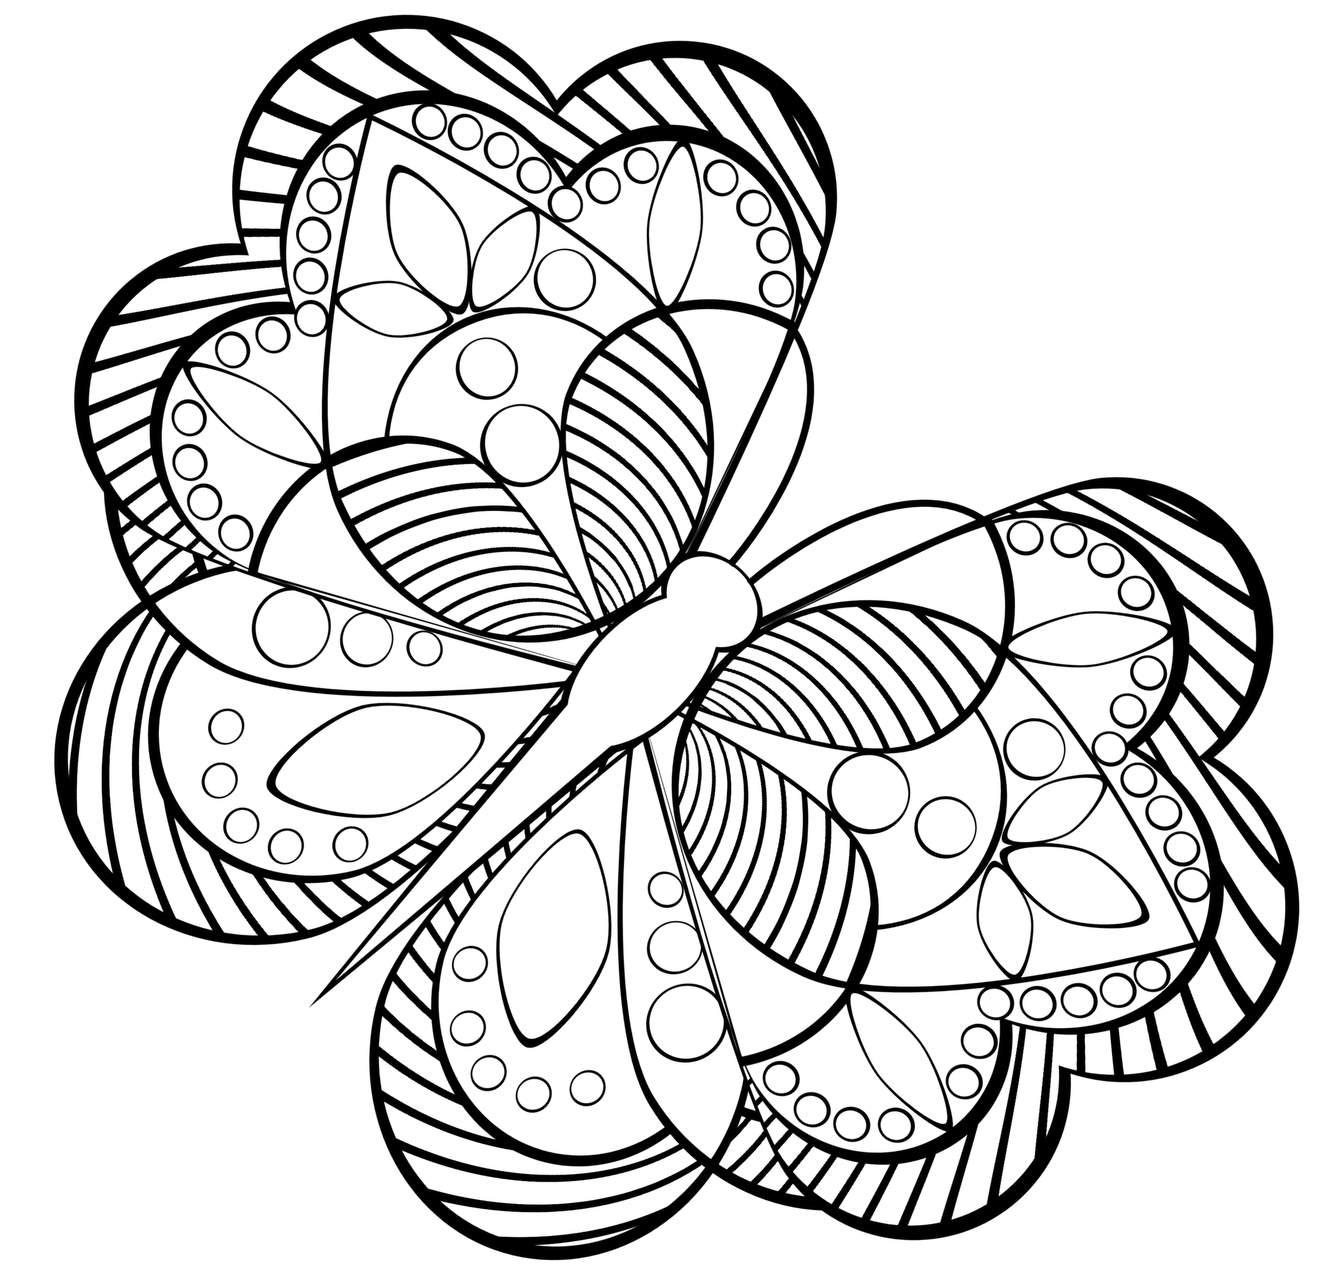 fun colouring pages for kids summer fun coloring pages to download and print for free fun for pages colouring kids